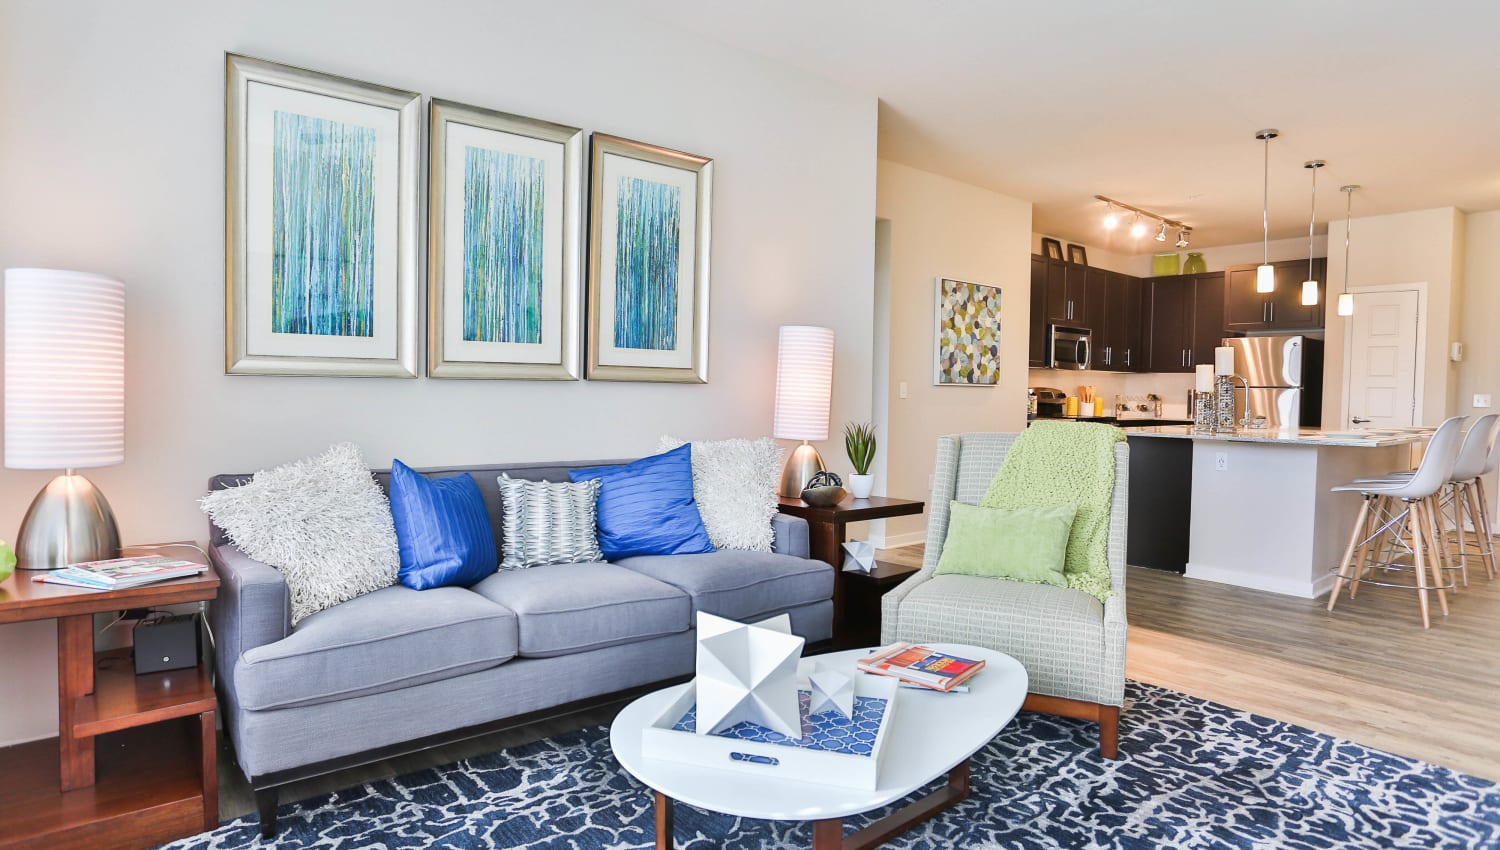 Model apartment with a comfortably furnished living space and a view of the kitchen at Olympus Steelyard in Chandler, Arizona